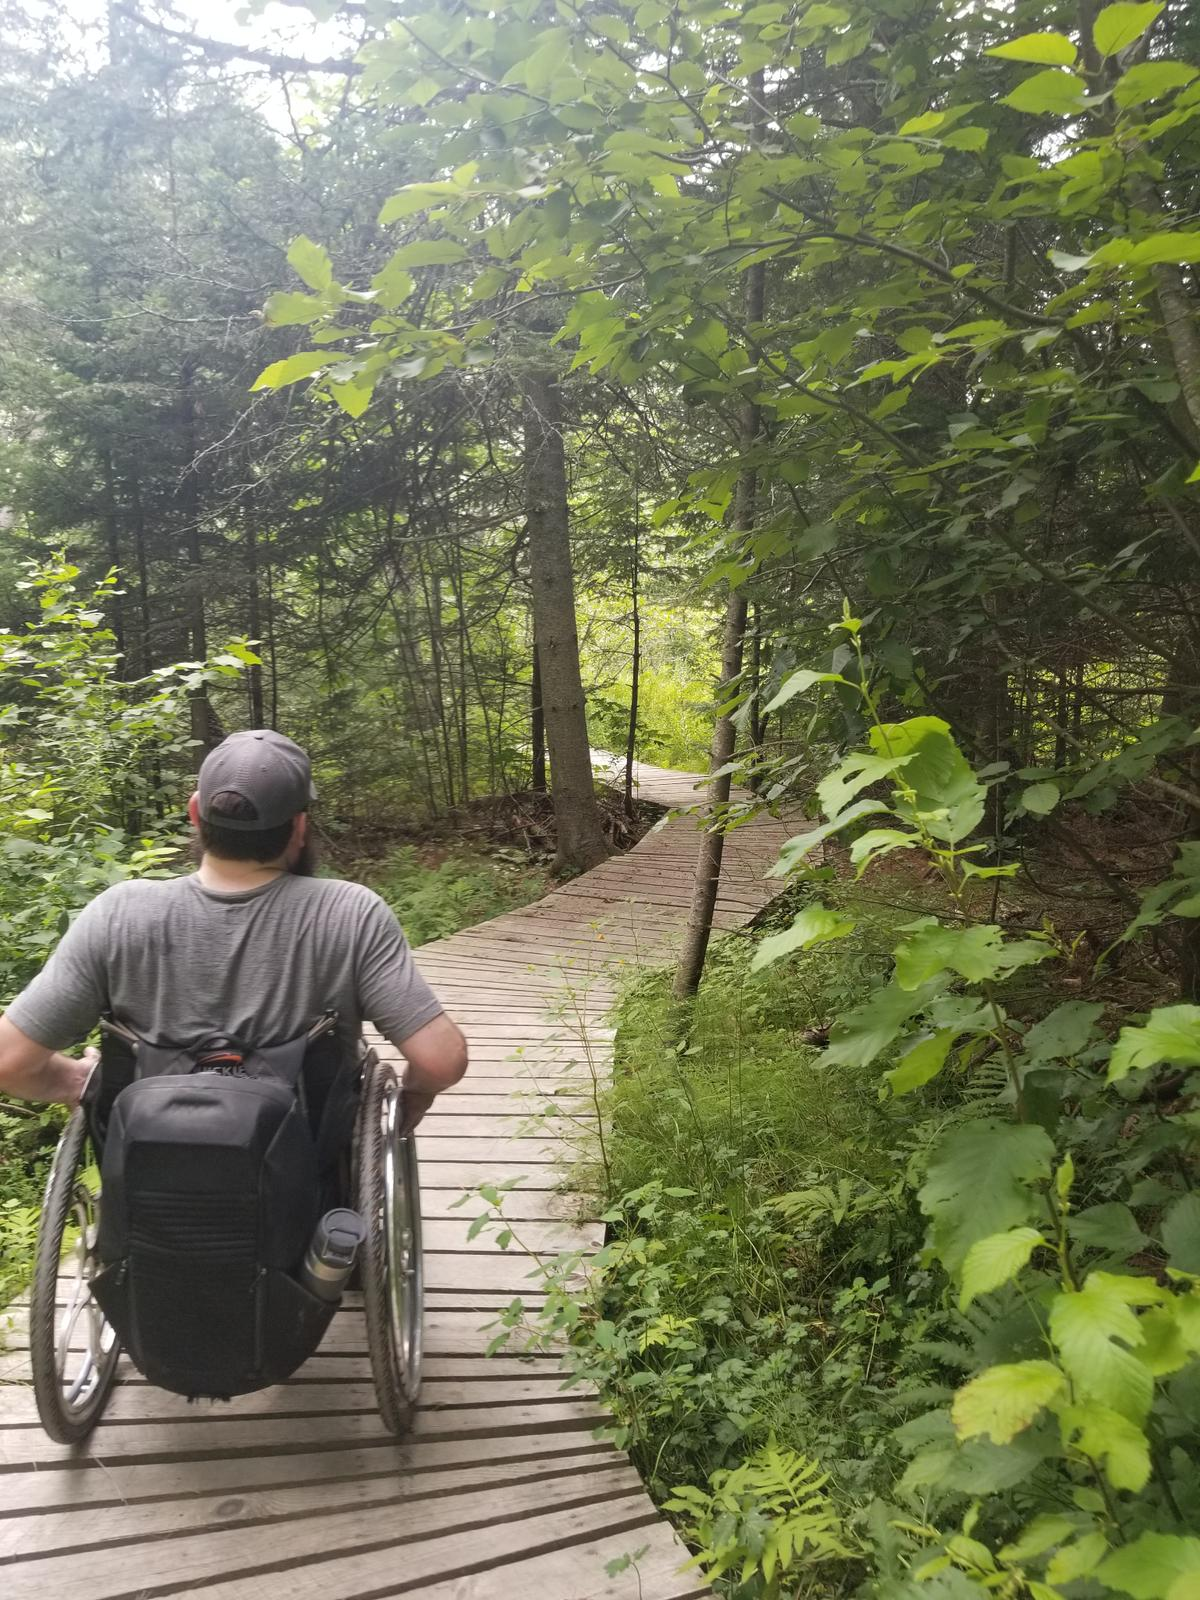 Enock crossing another boardwalk through the woods. Photo credit: Enock Glidden